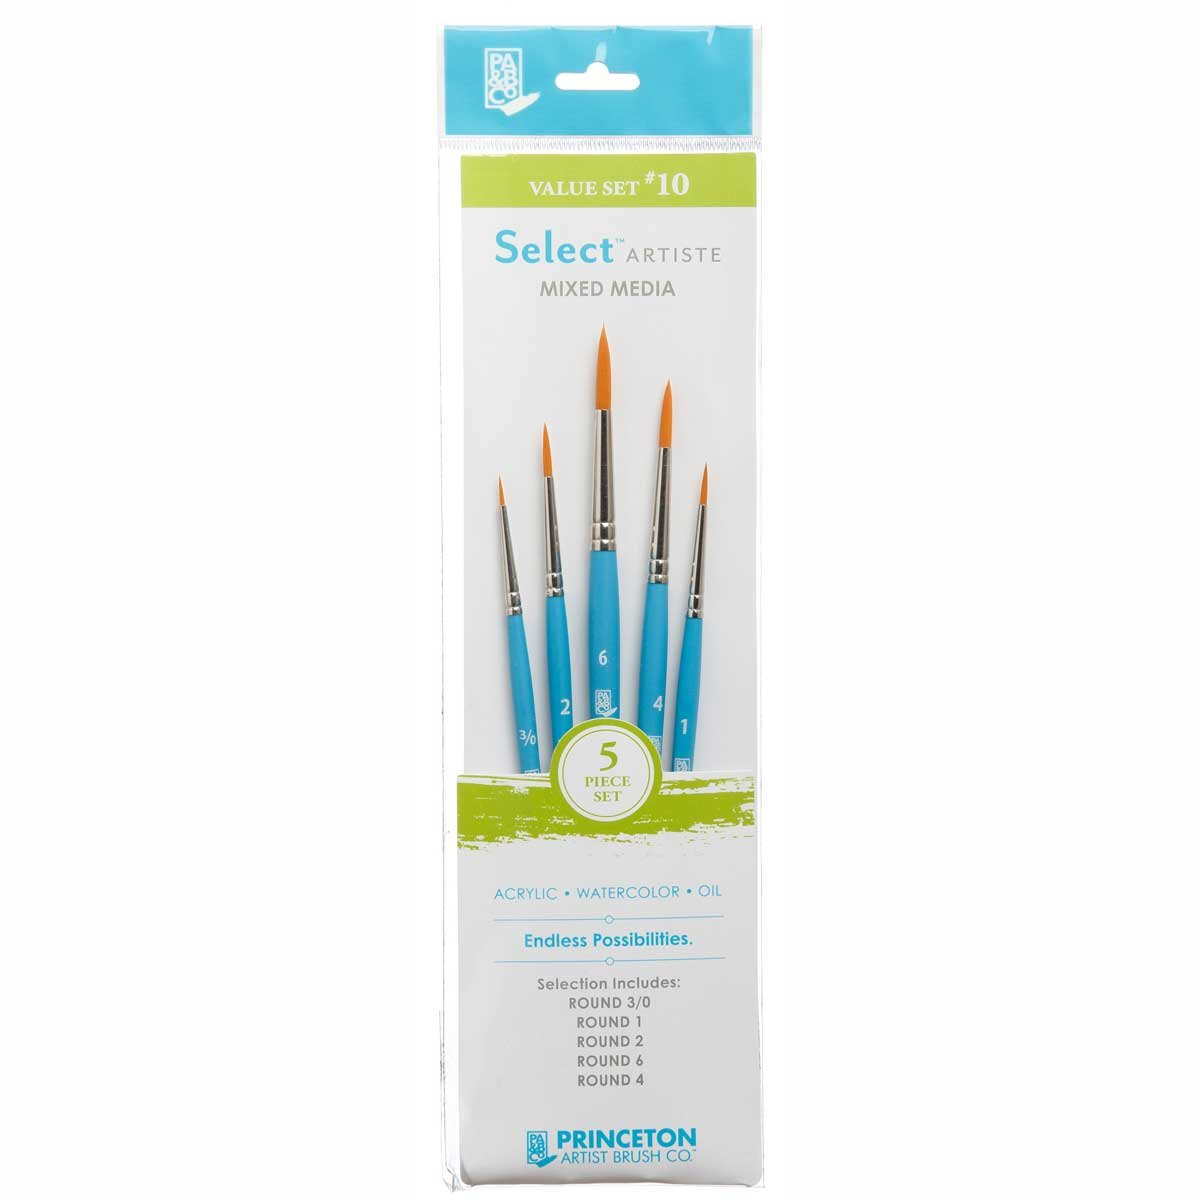 Princeton Select Artiste, Mixed-Media Brushes for Acrylic, Oil, Watercolor Series 3750, 5 Piece Value Set 110 by Princeton Artist Brush